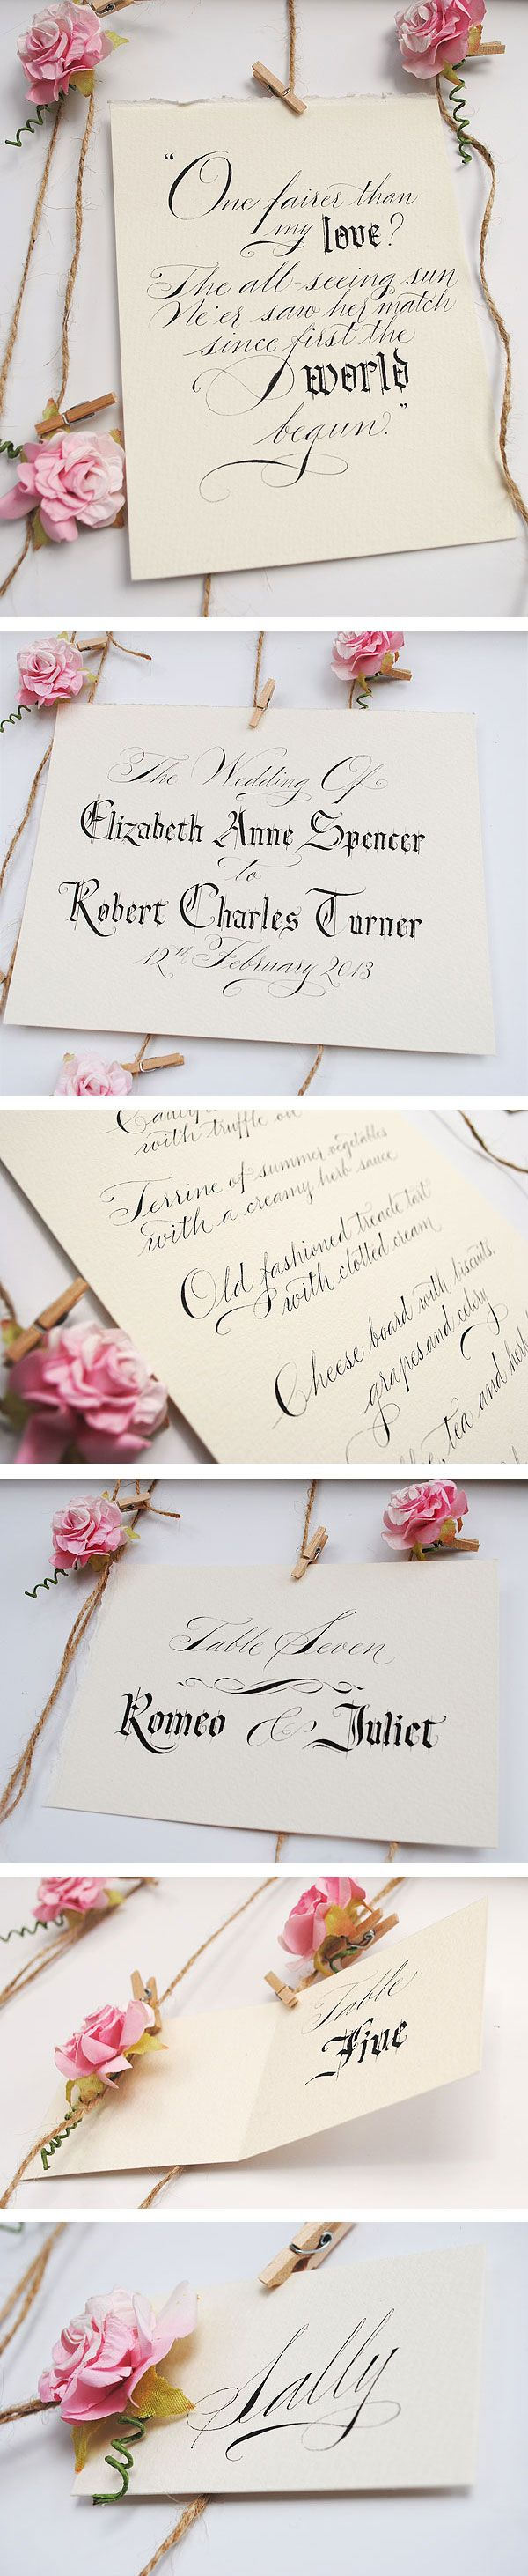 Shakespeare inspired English country garden wedding quotes and signs